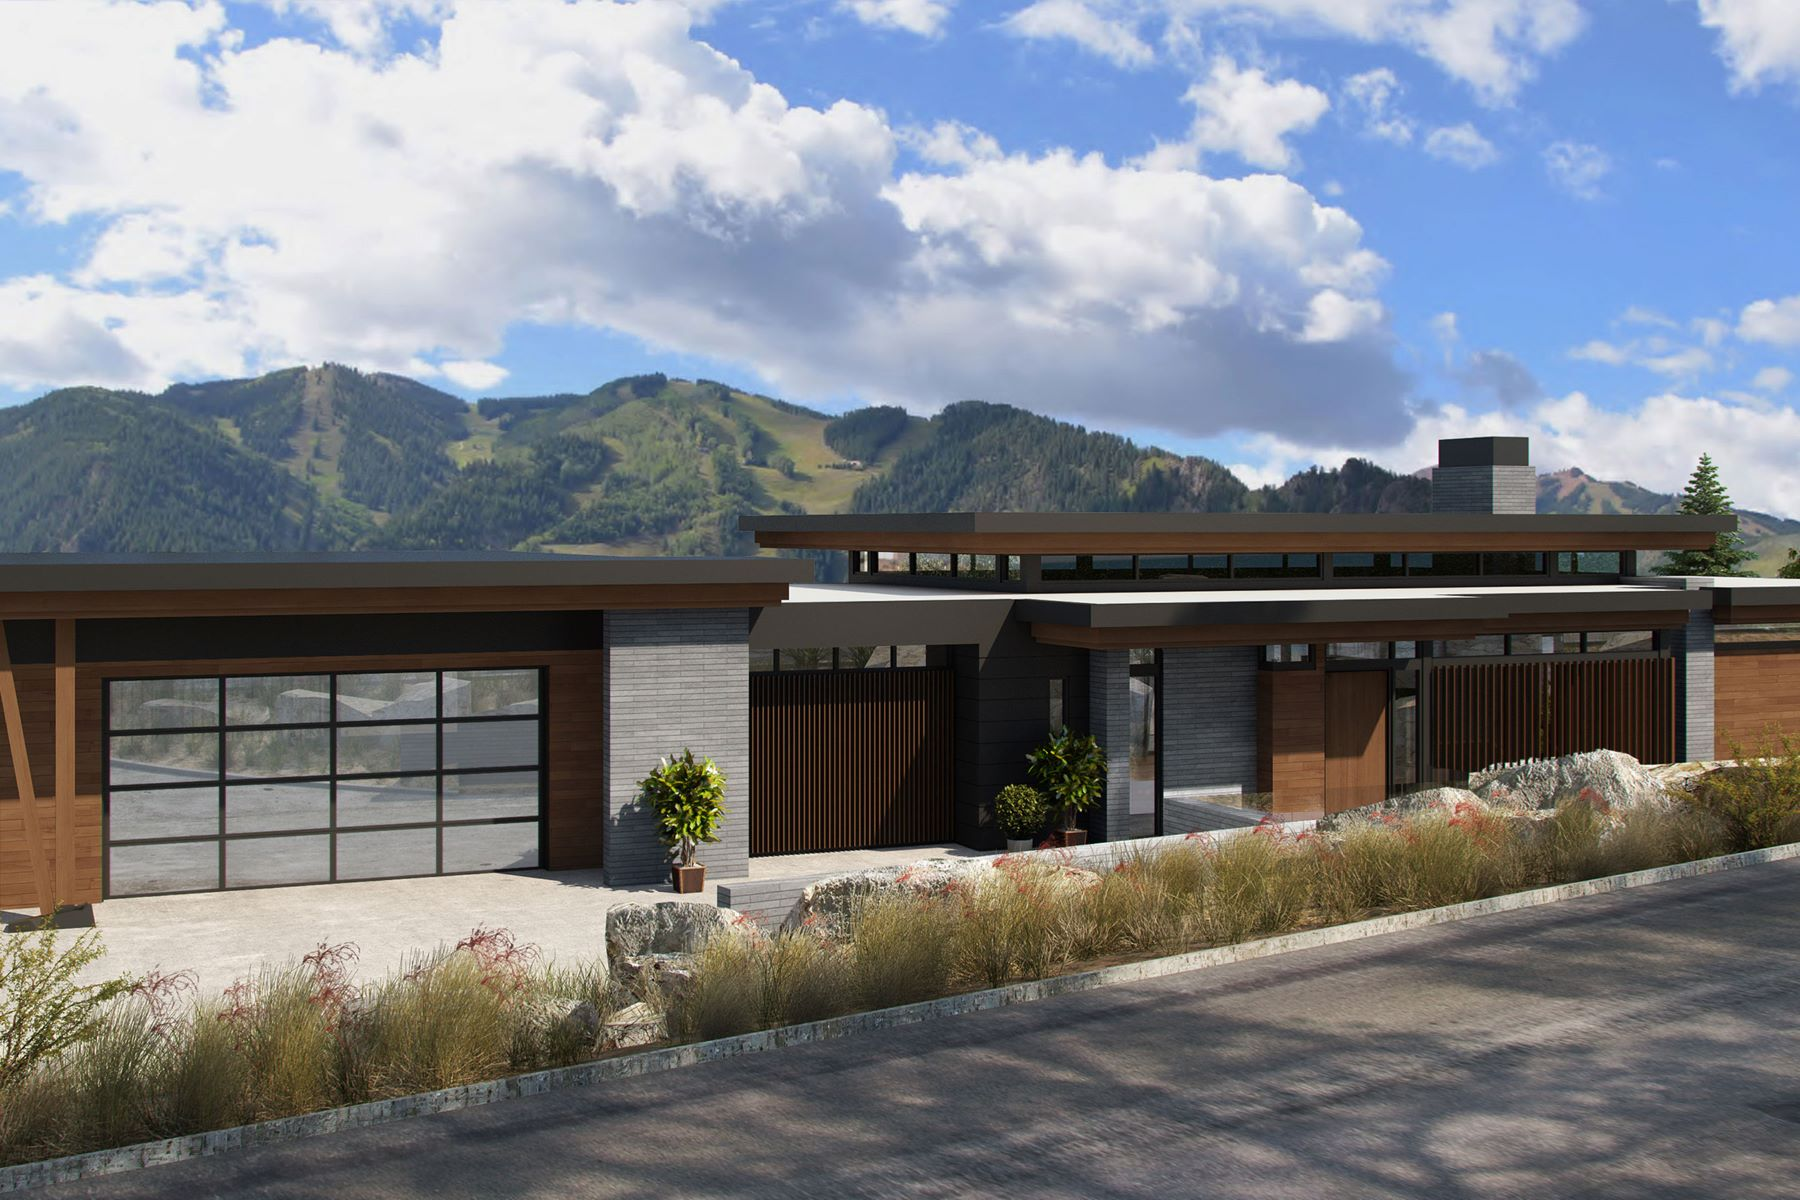 Single Family Homes for Sale at The Pinnacle of Red Mountain 12 Salvation Circle Aspen, Colorado 81611 United States